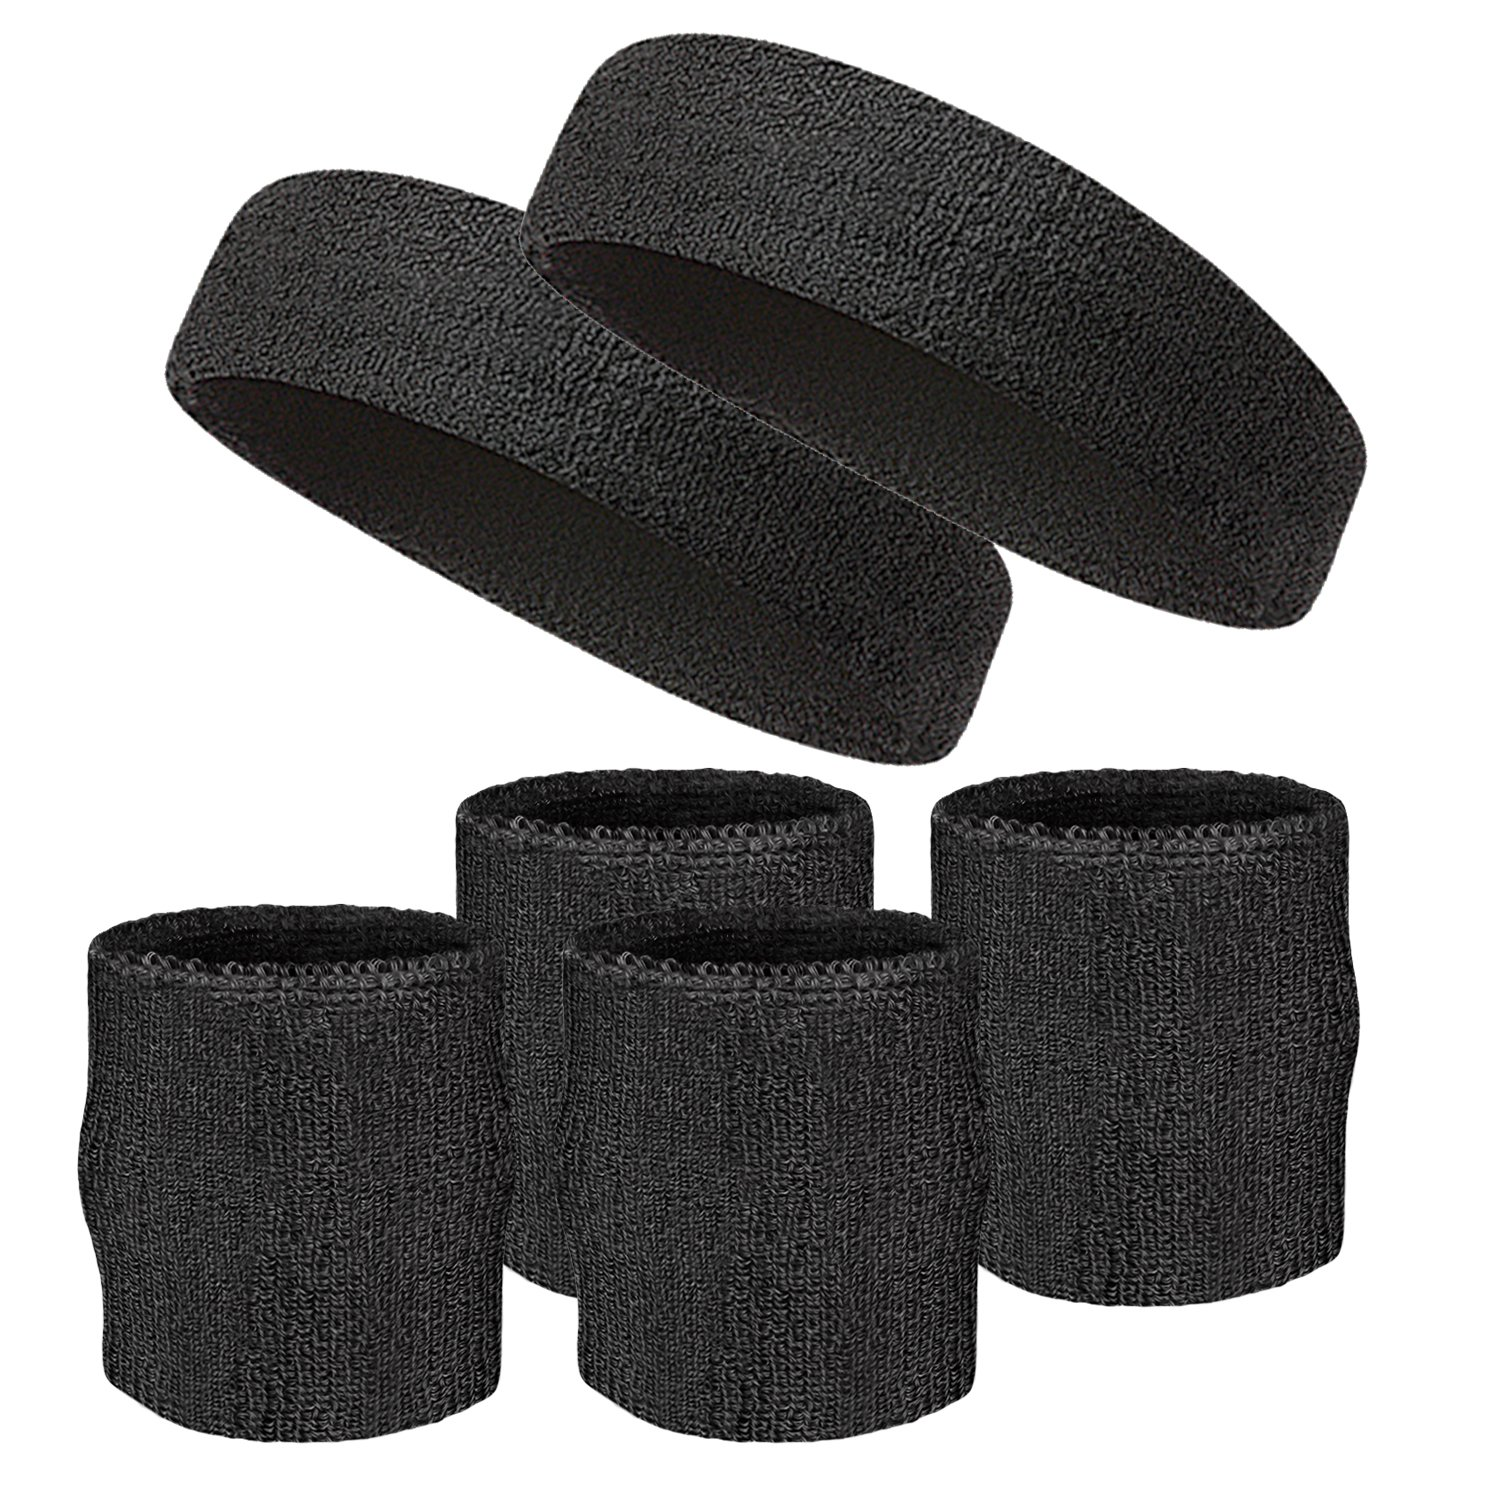 Elehere 2018 New Sweatband Wristband for Sports Basketball Football Absorbent Party Outdoor 3.5'' Pack of 6 (Black- Headbands & Wristbands)